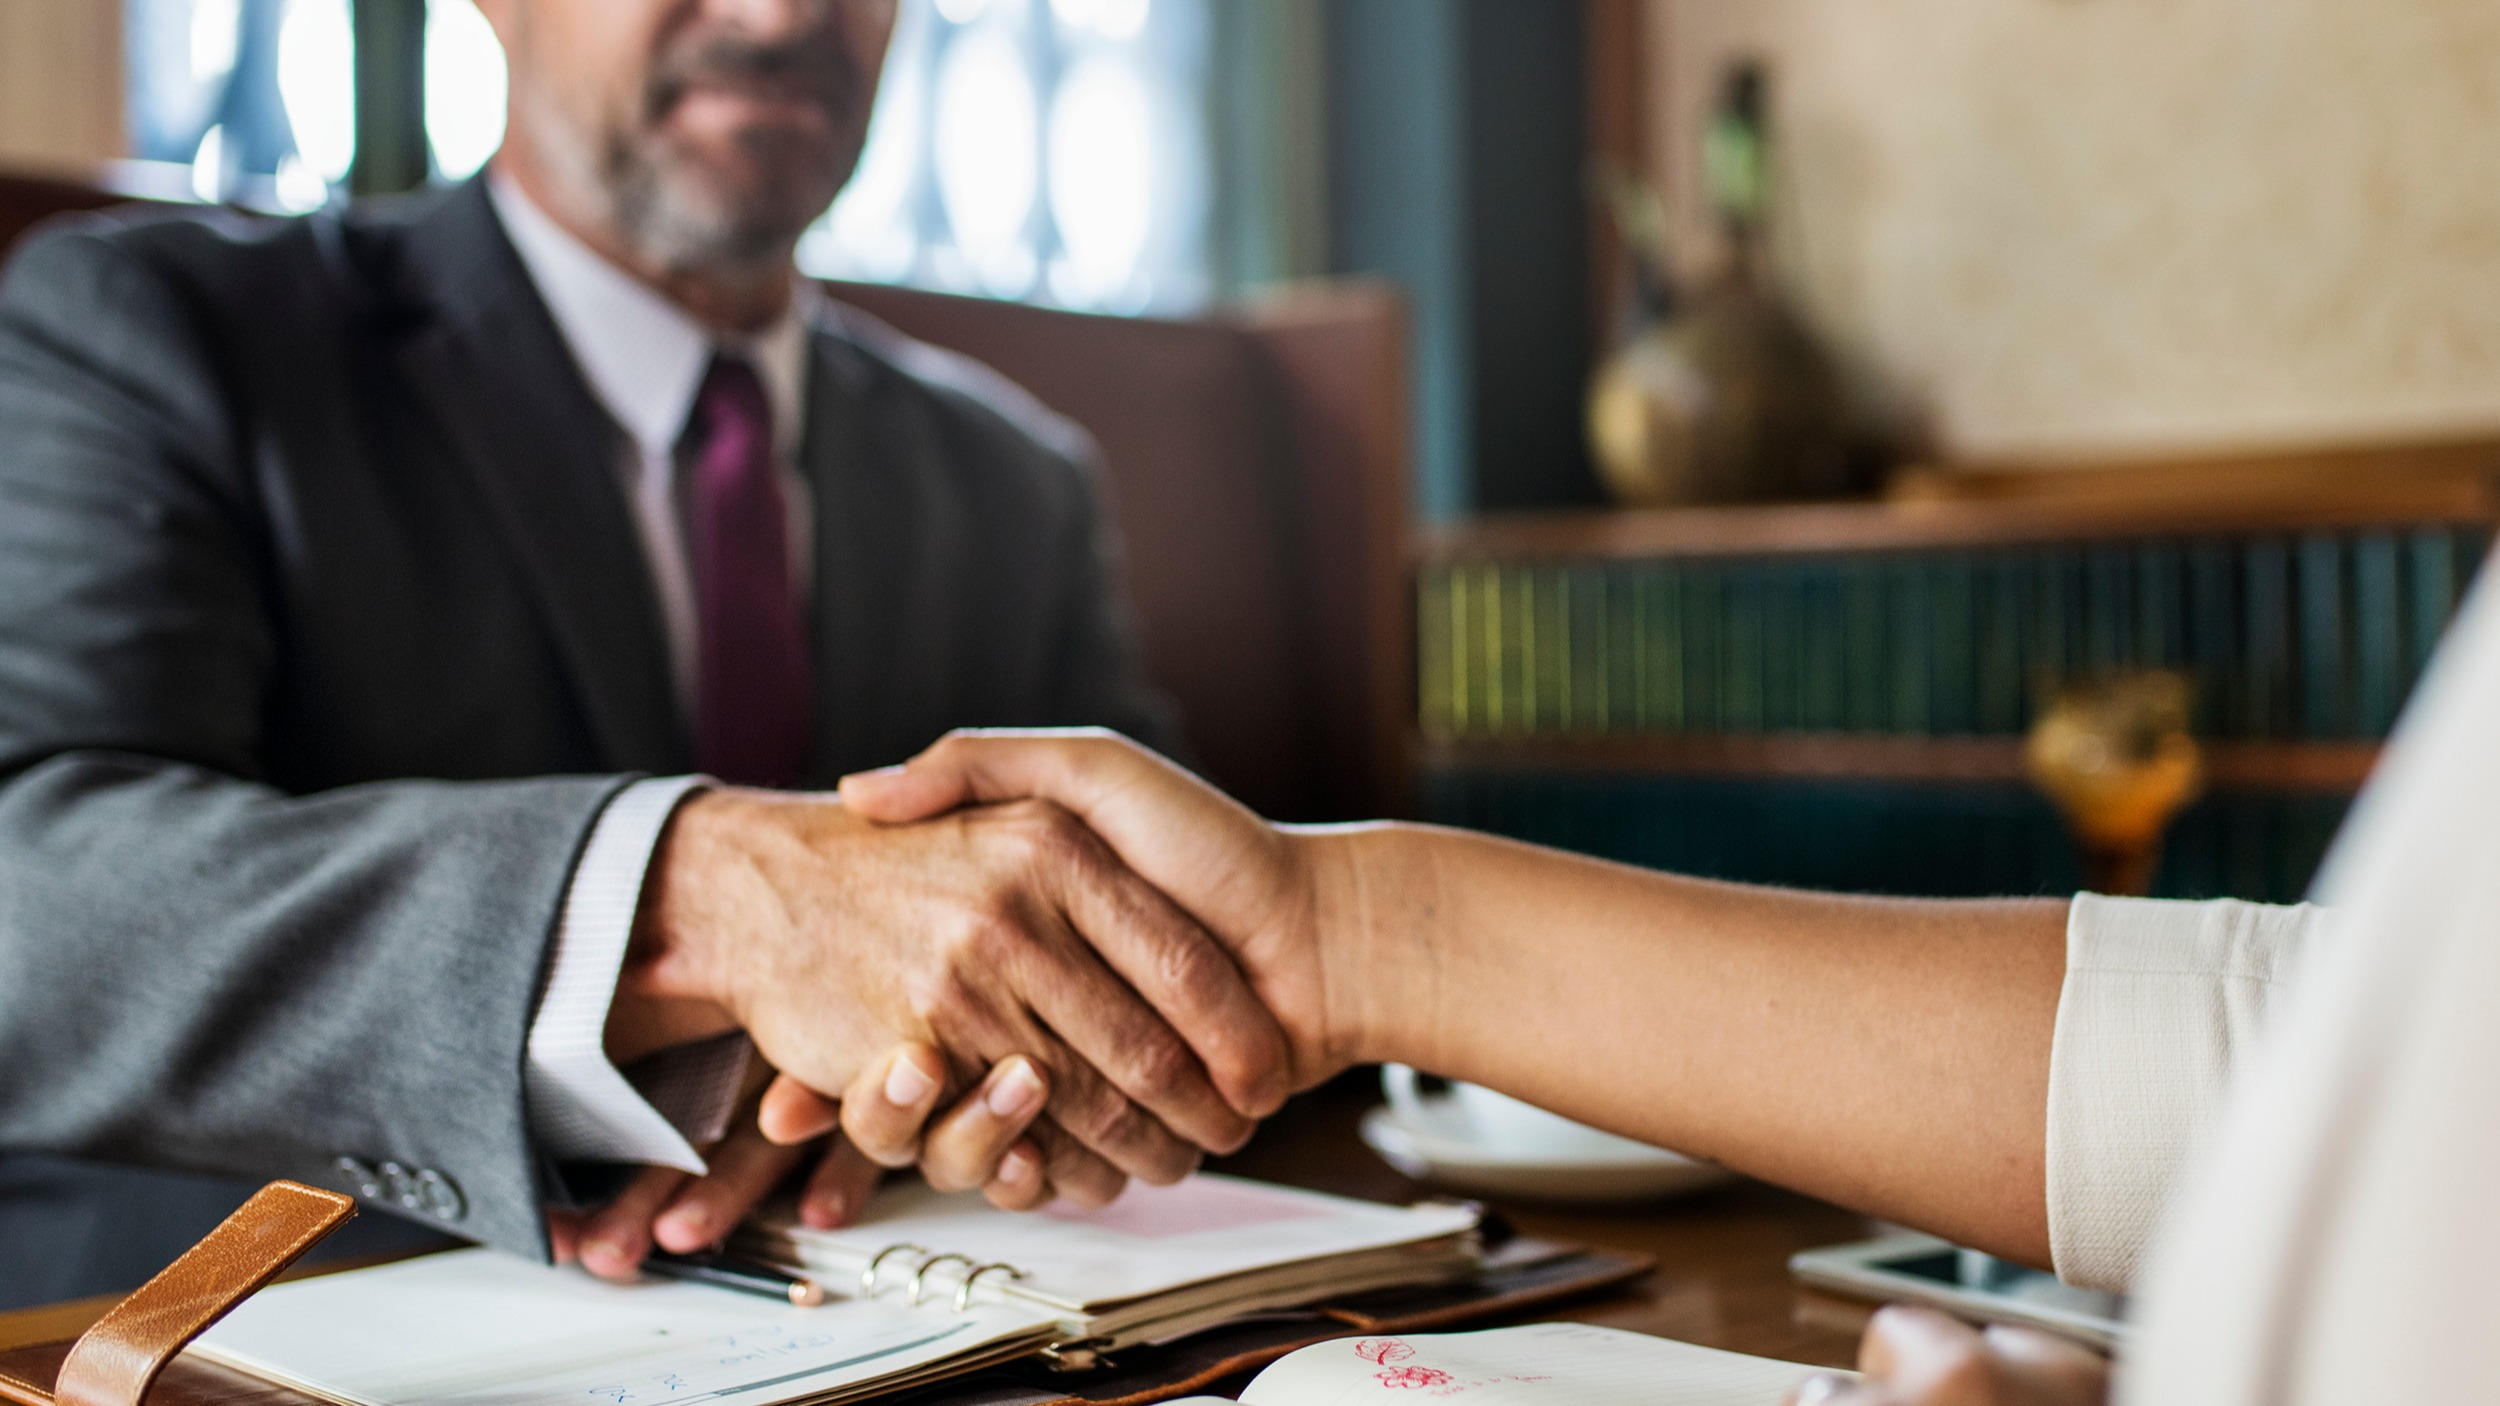 Employee Manager One on One Meeting: A Guide